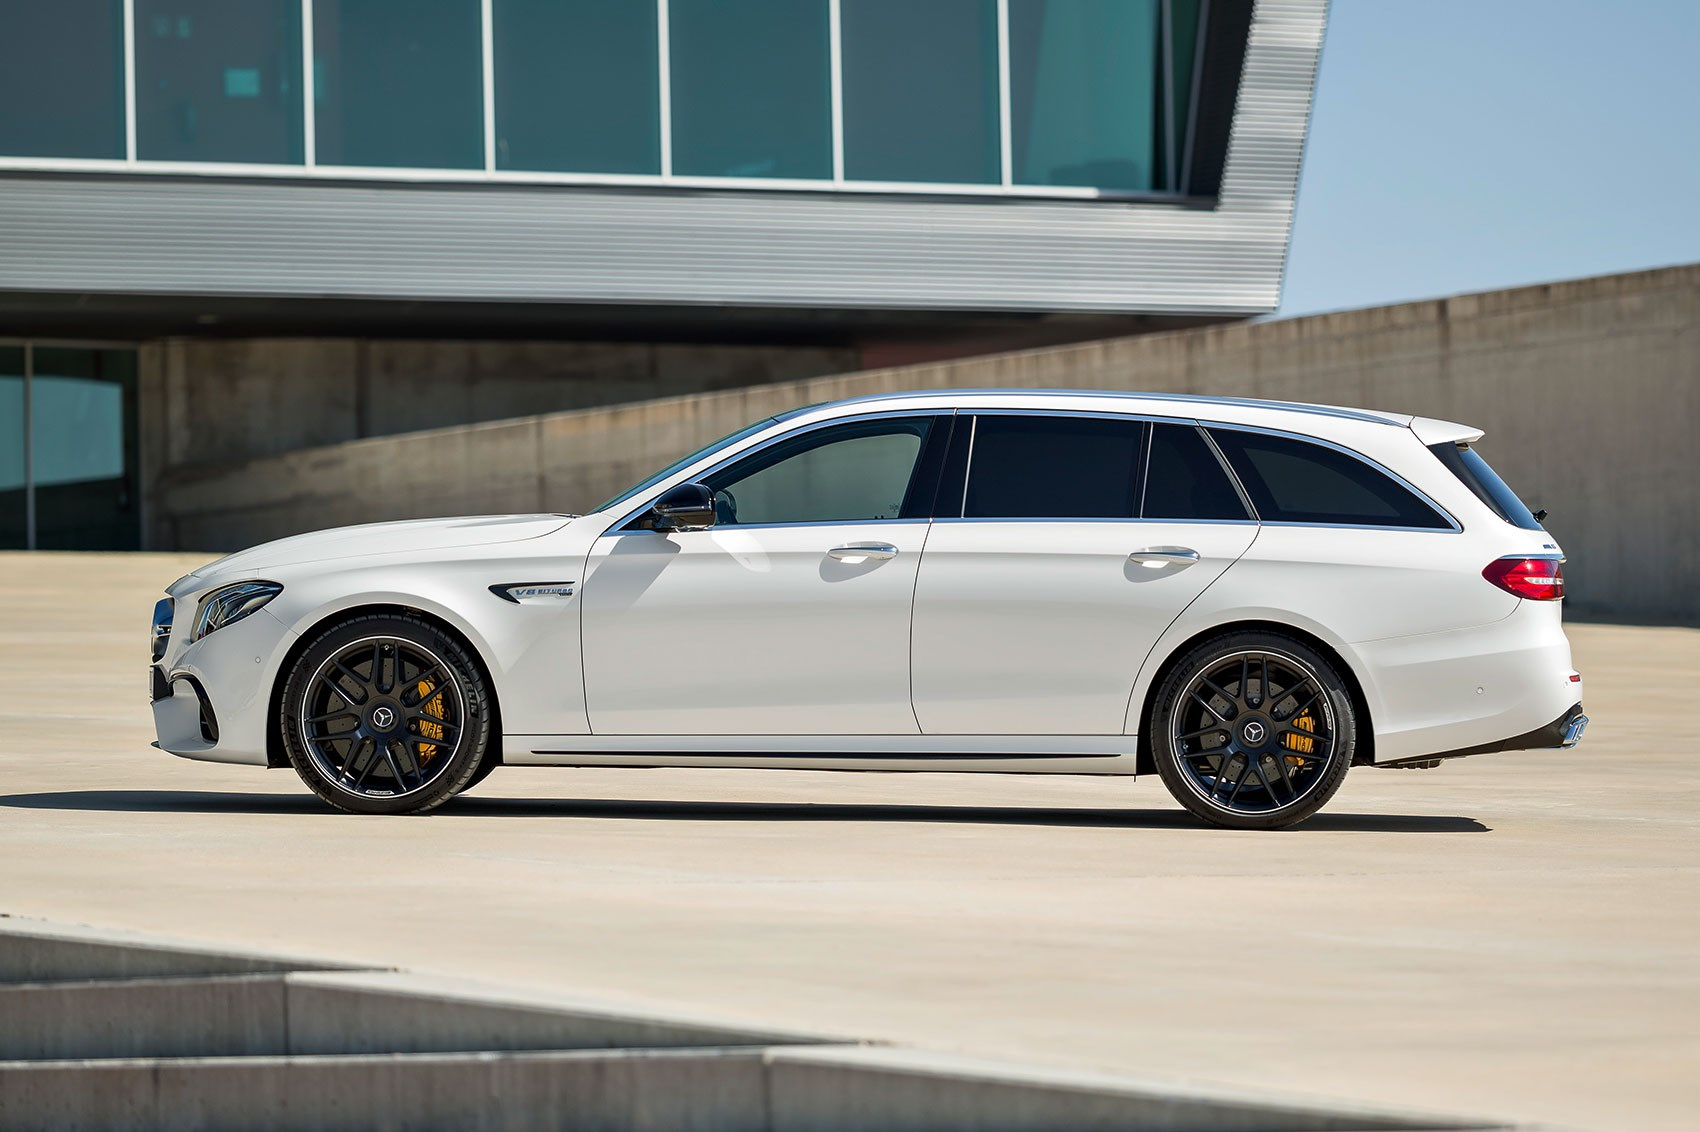 Mercedes amg e63 4matic estate prices revealed for 2017 for Mercedes benz station wagon 2017